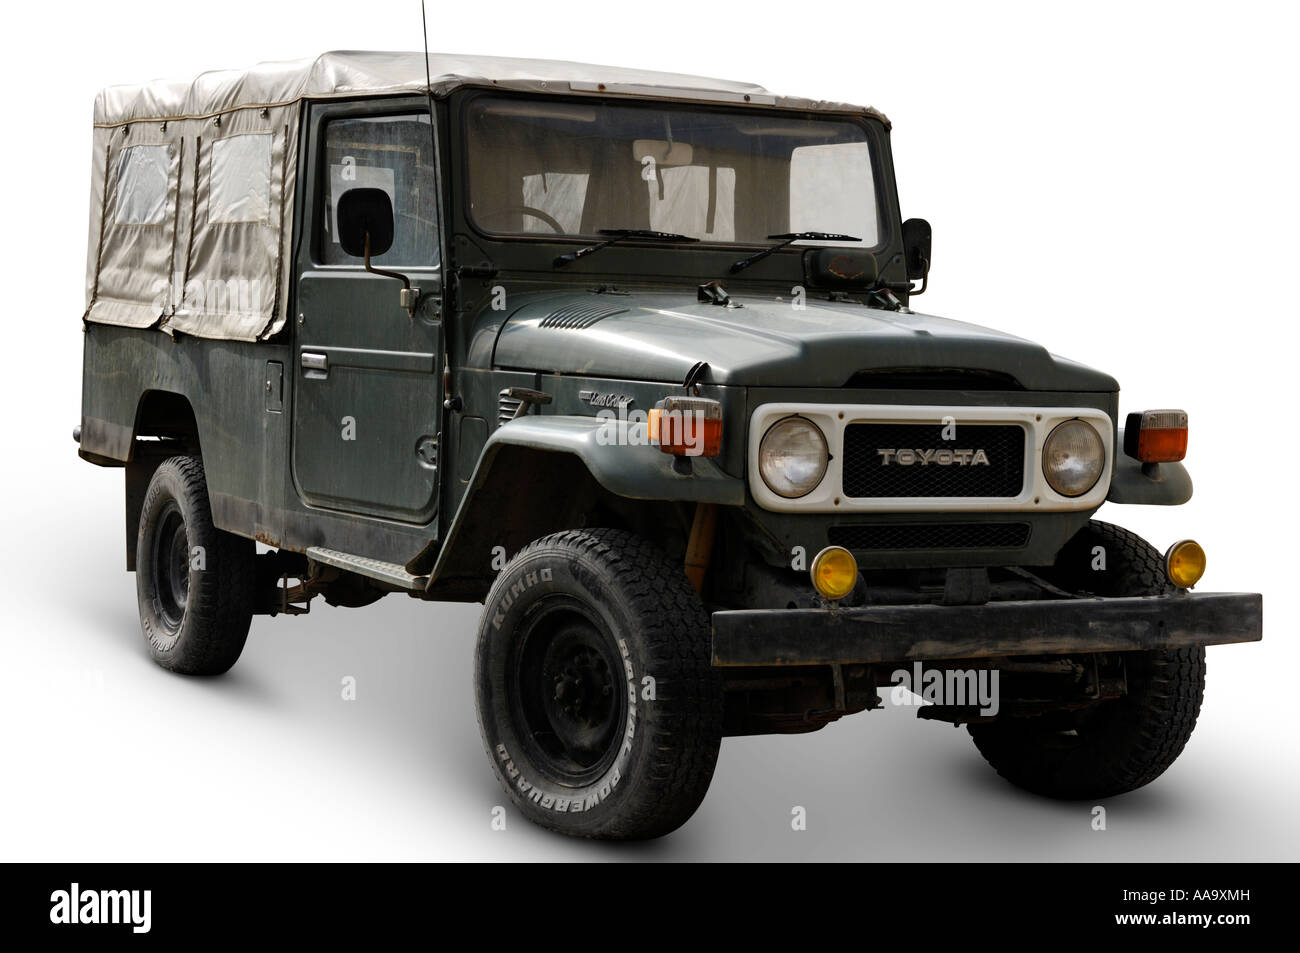 toyota land cruiser suv truck isolated over white cutout car jeep stock photo 12562384 alamy. Black Bedroom Furniture Sets. Home Design Ideas